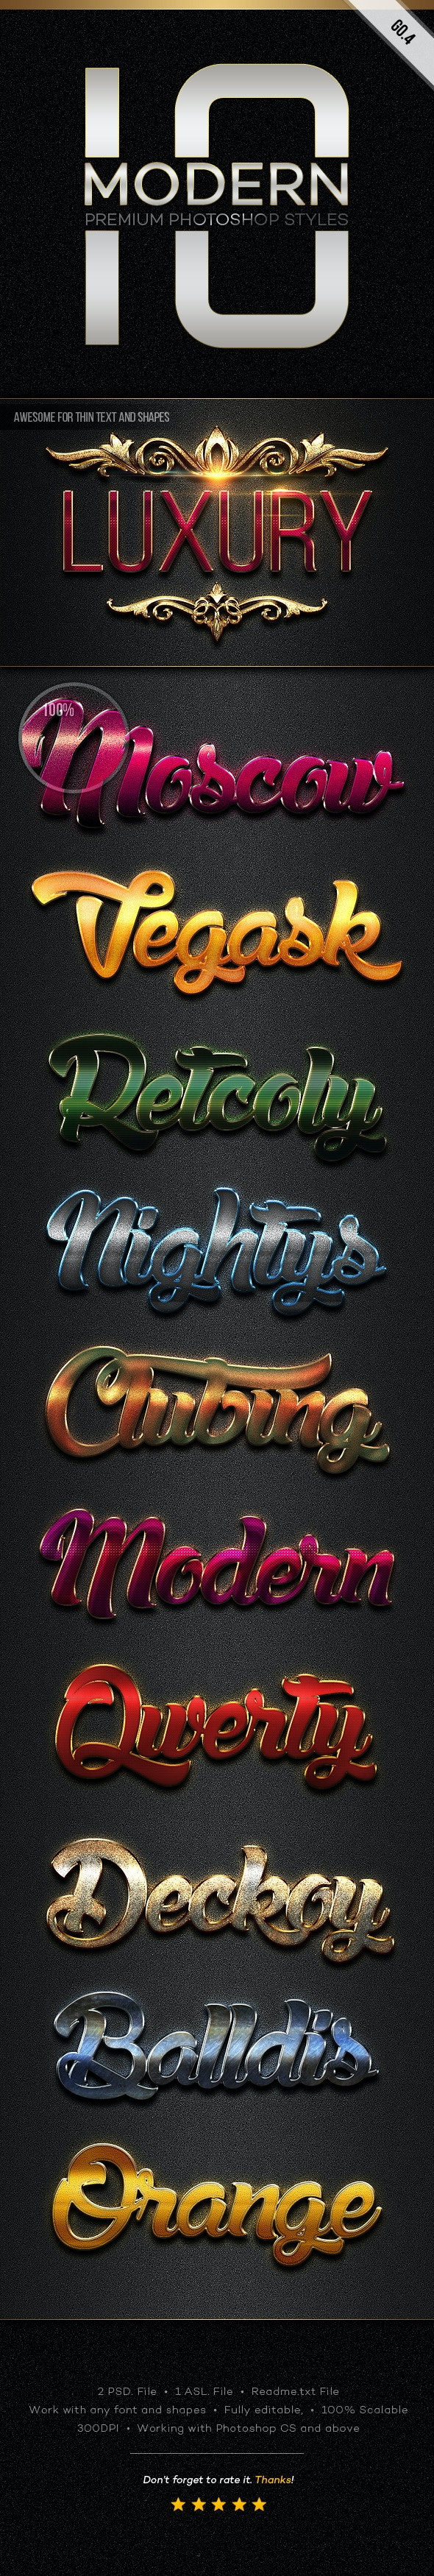 10 Modern Styles GO.4 - Text Effects Styles